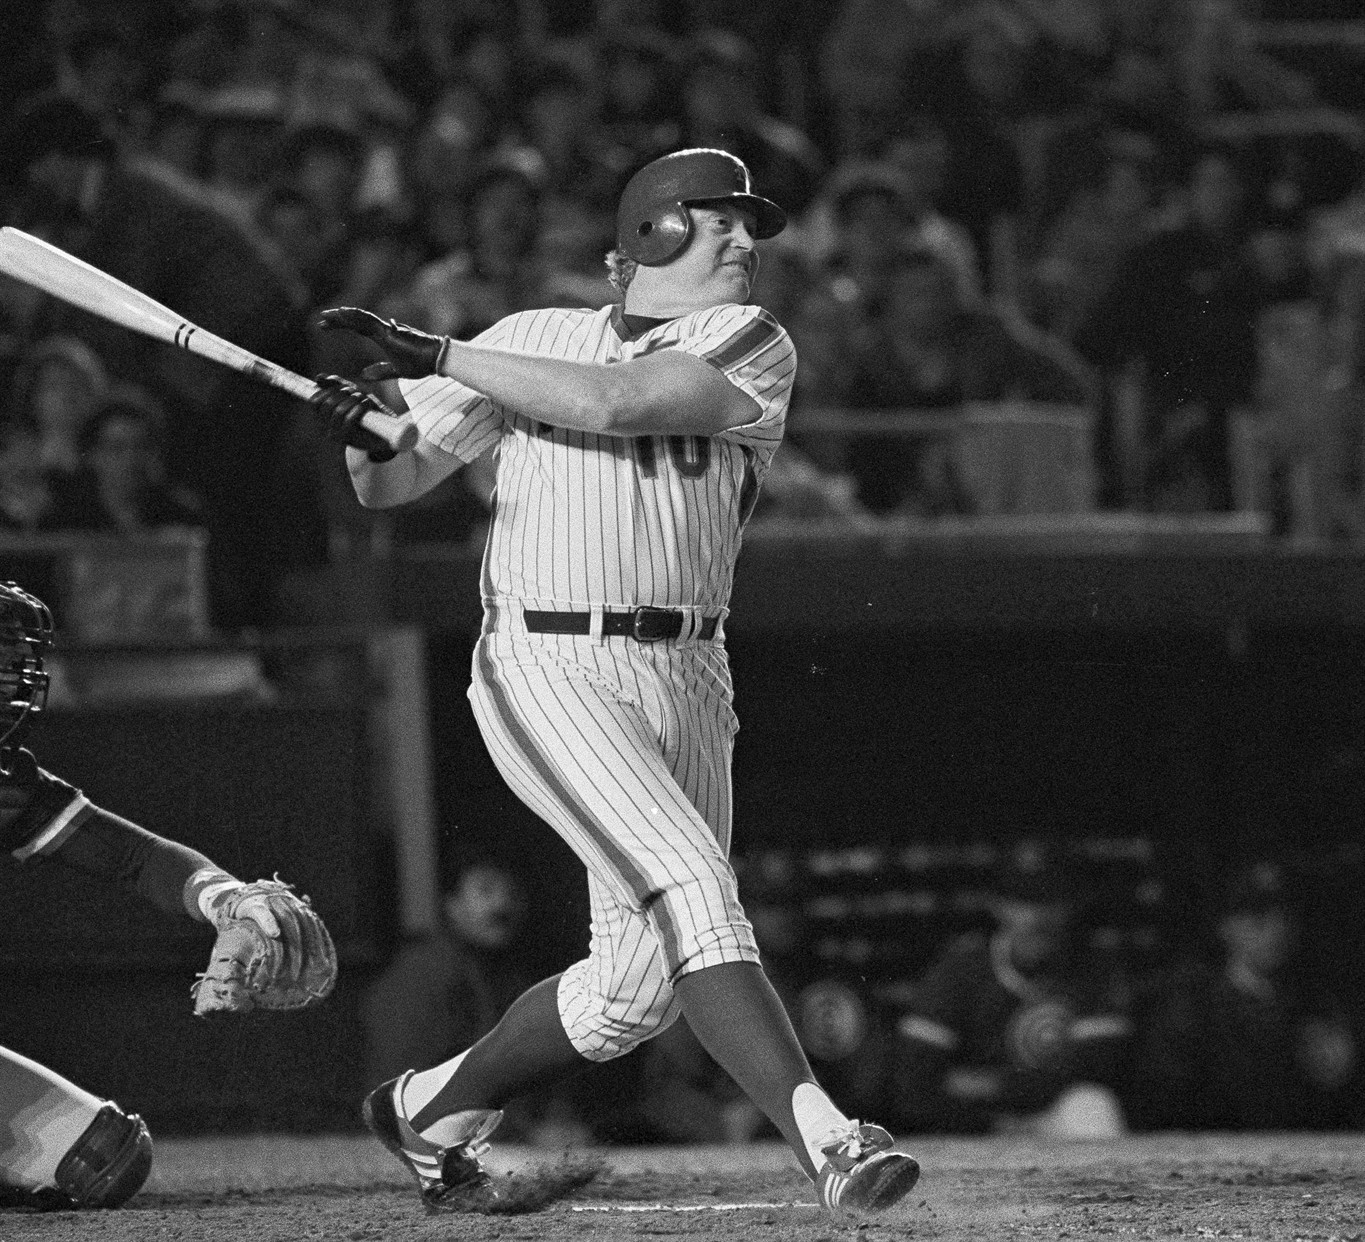 Rusty Staub, Mets, Expos icon, dies at age 73